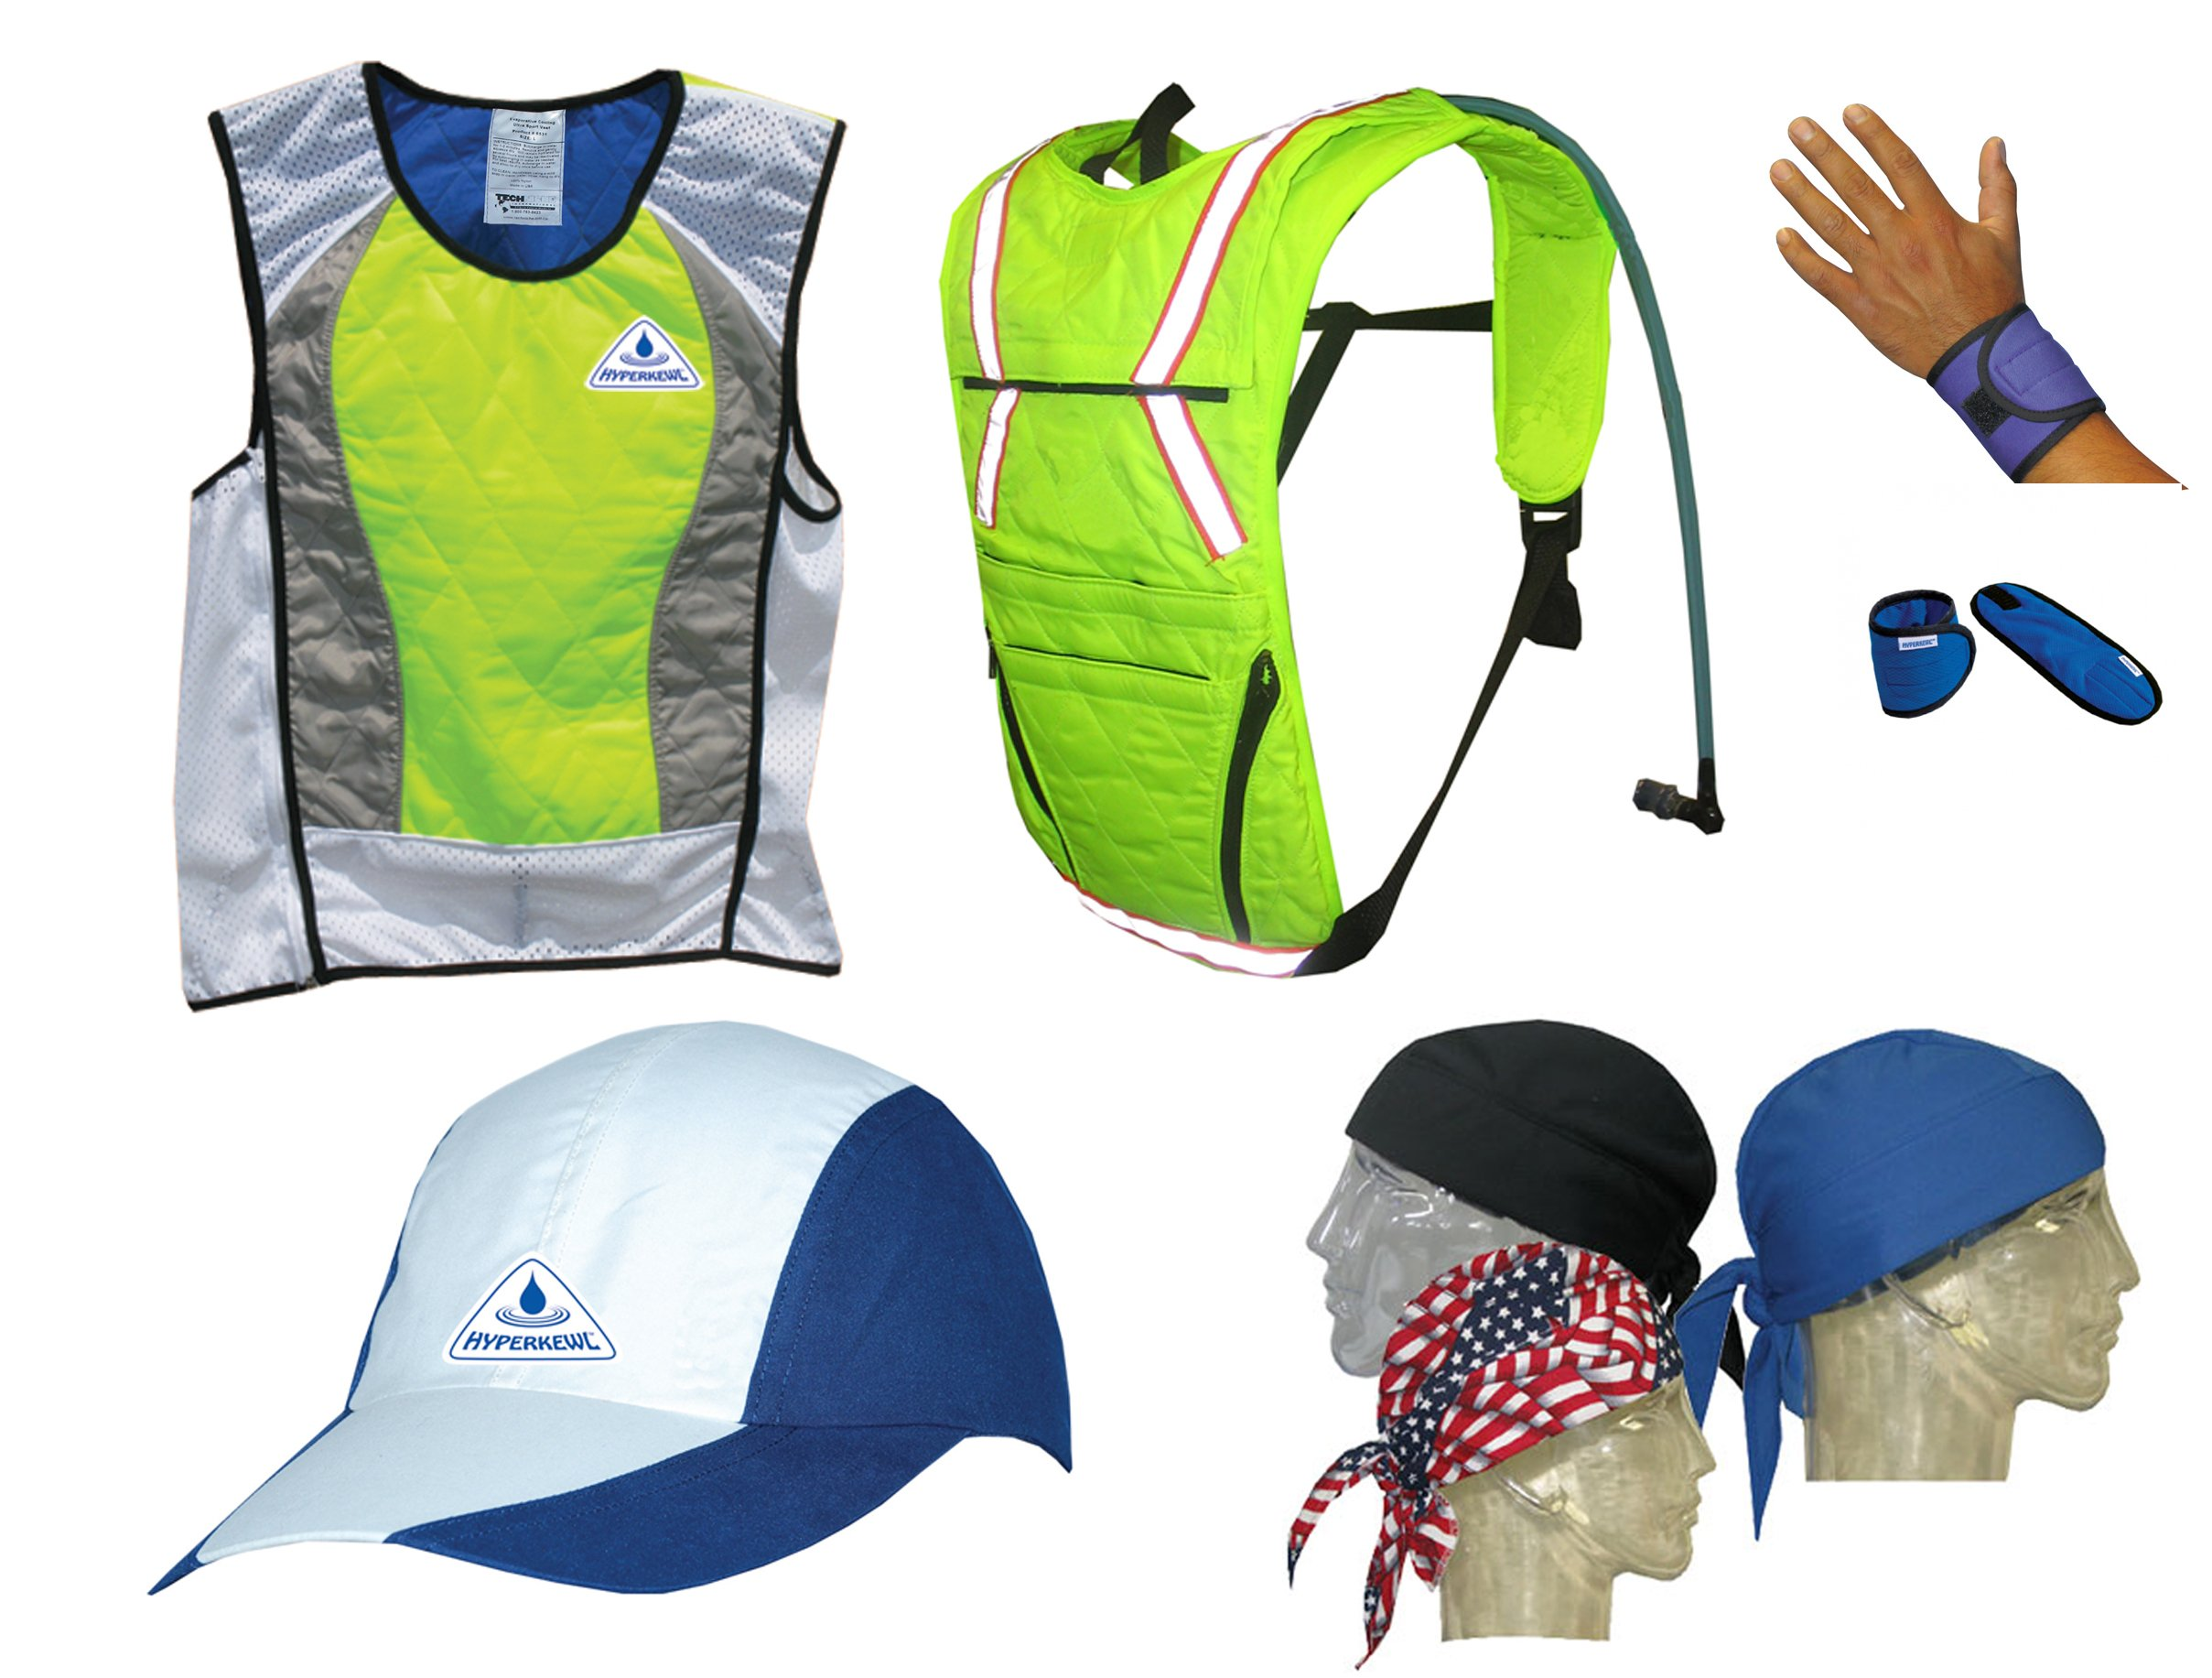 Action Sports Ultimate Summer Cooling Kit - 7 PIECES - HI-VIZ LIMESMALL